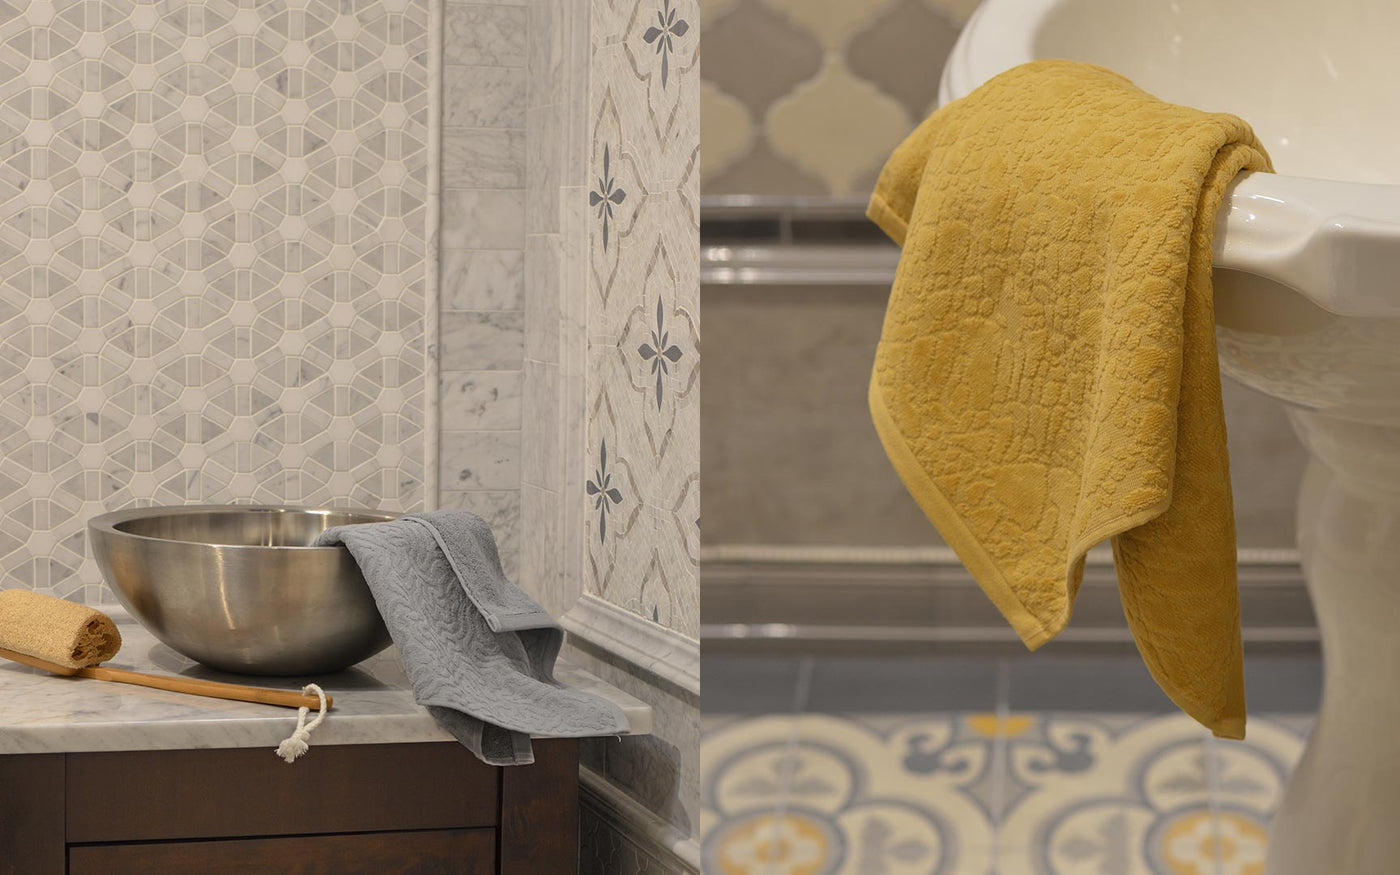 Affina organic cotton bath towels